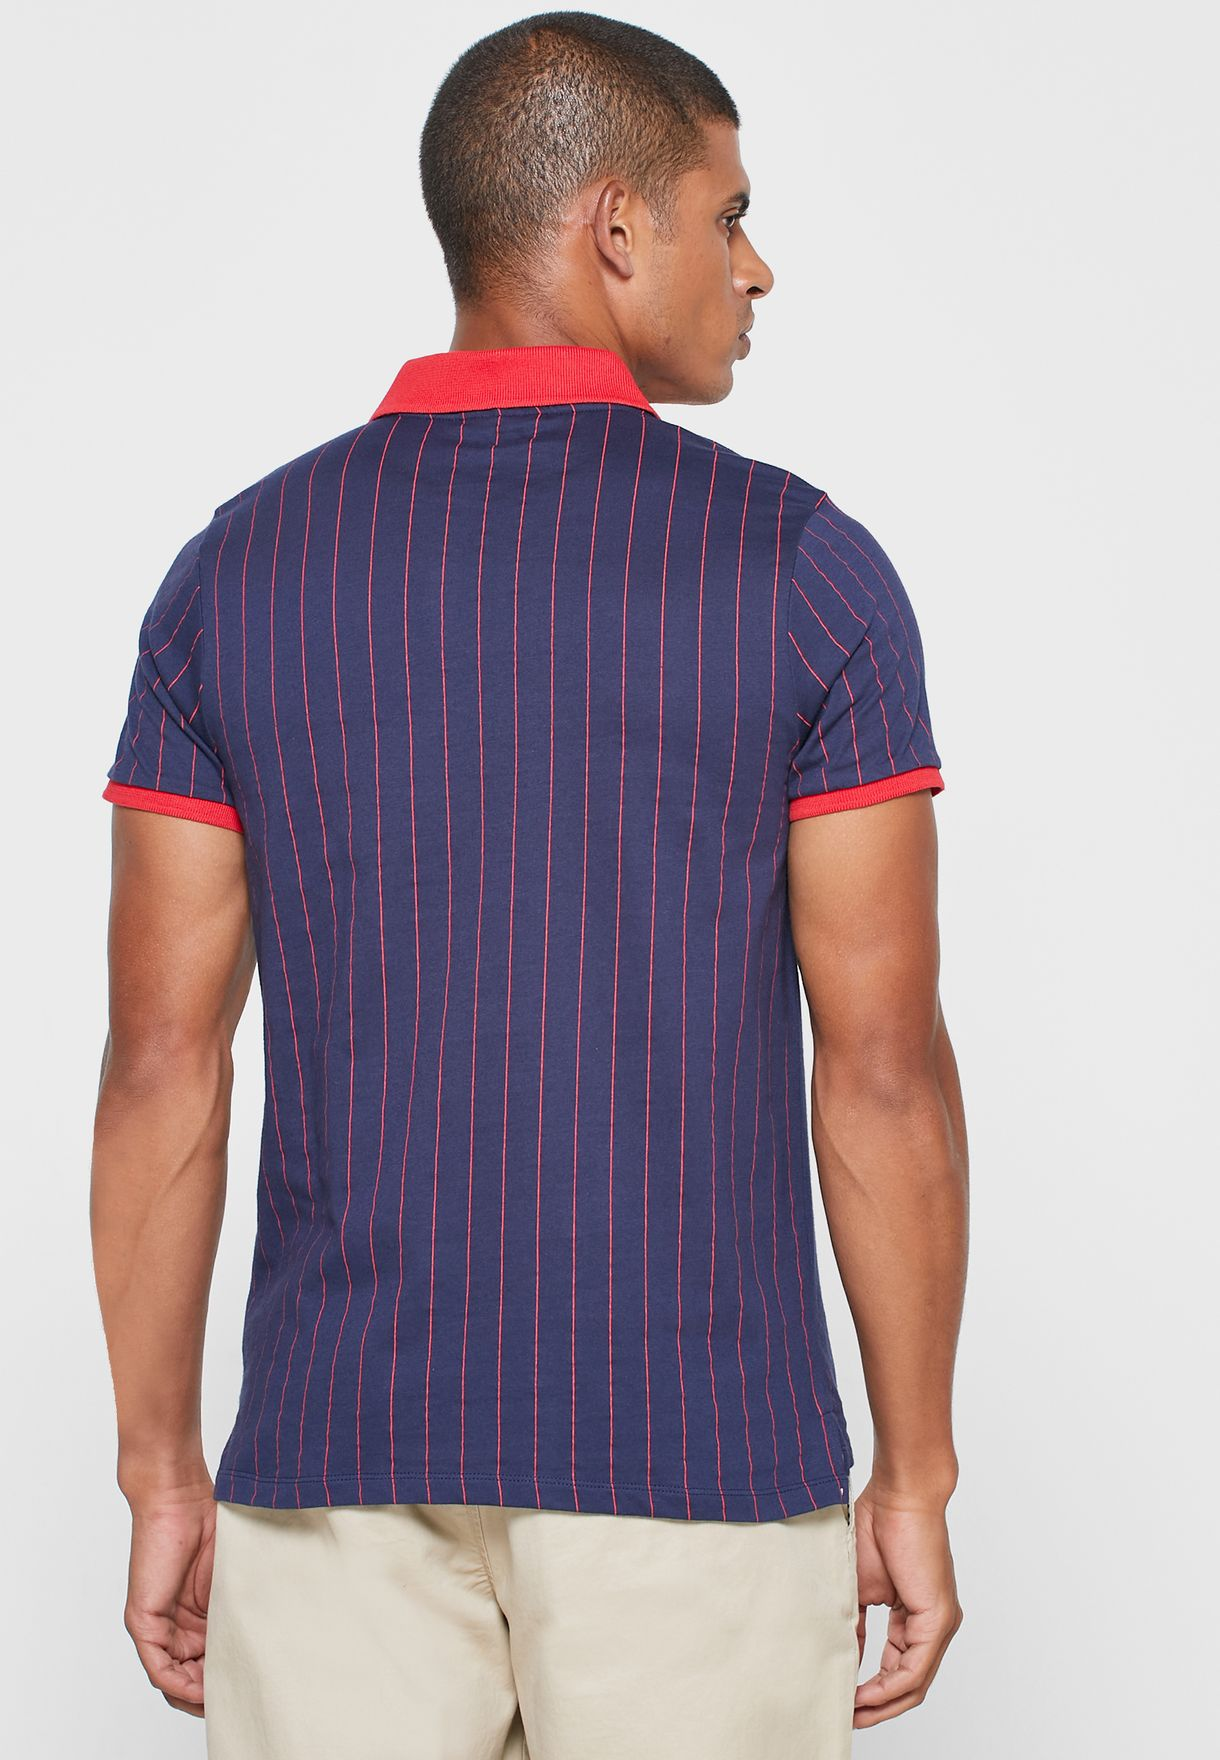 BB1 CLASSIC VINTAGE STRIPED POLO